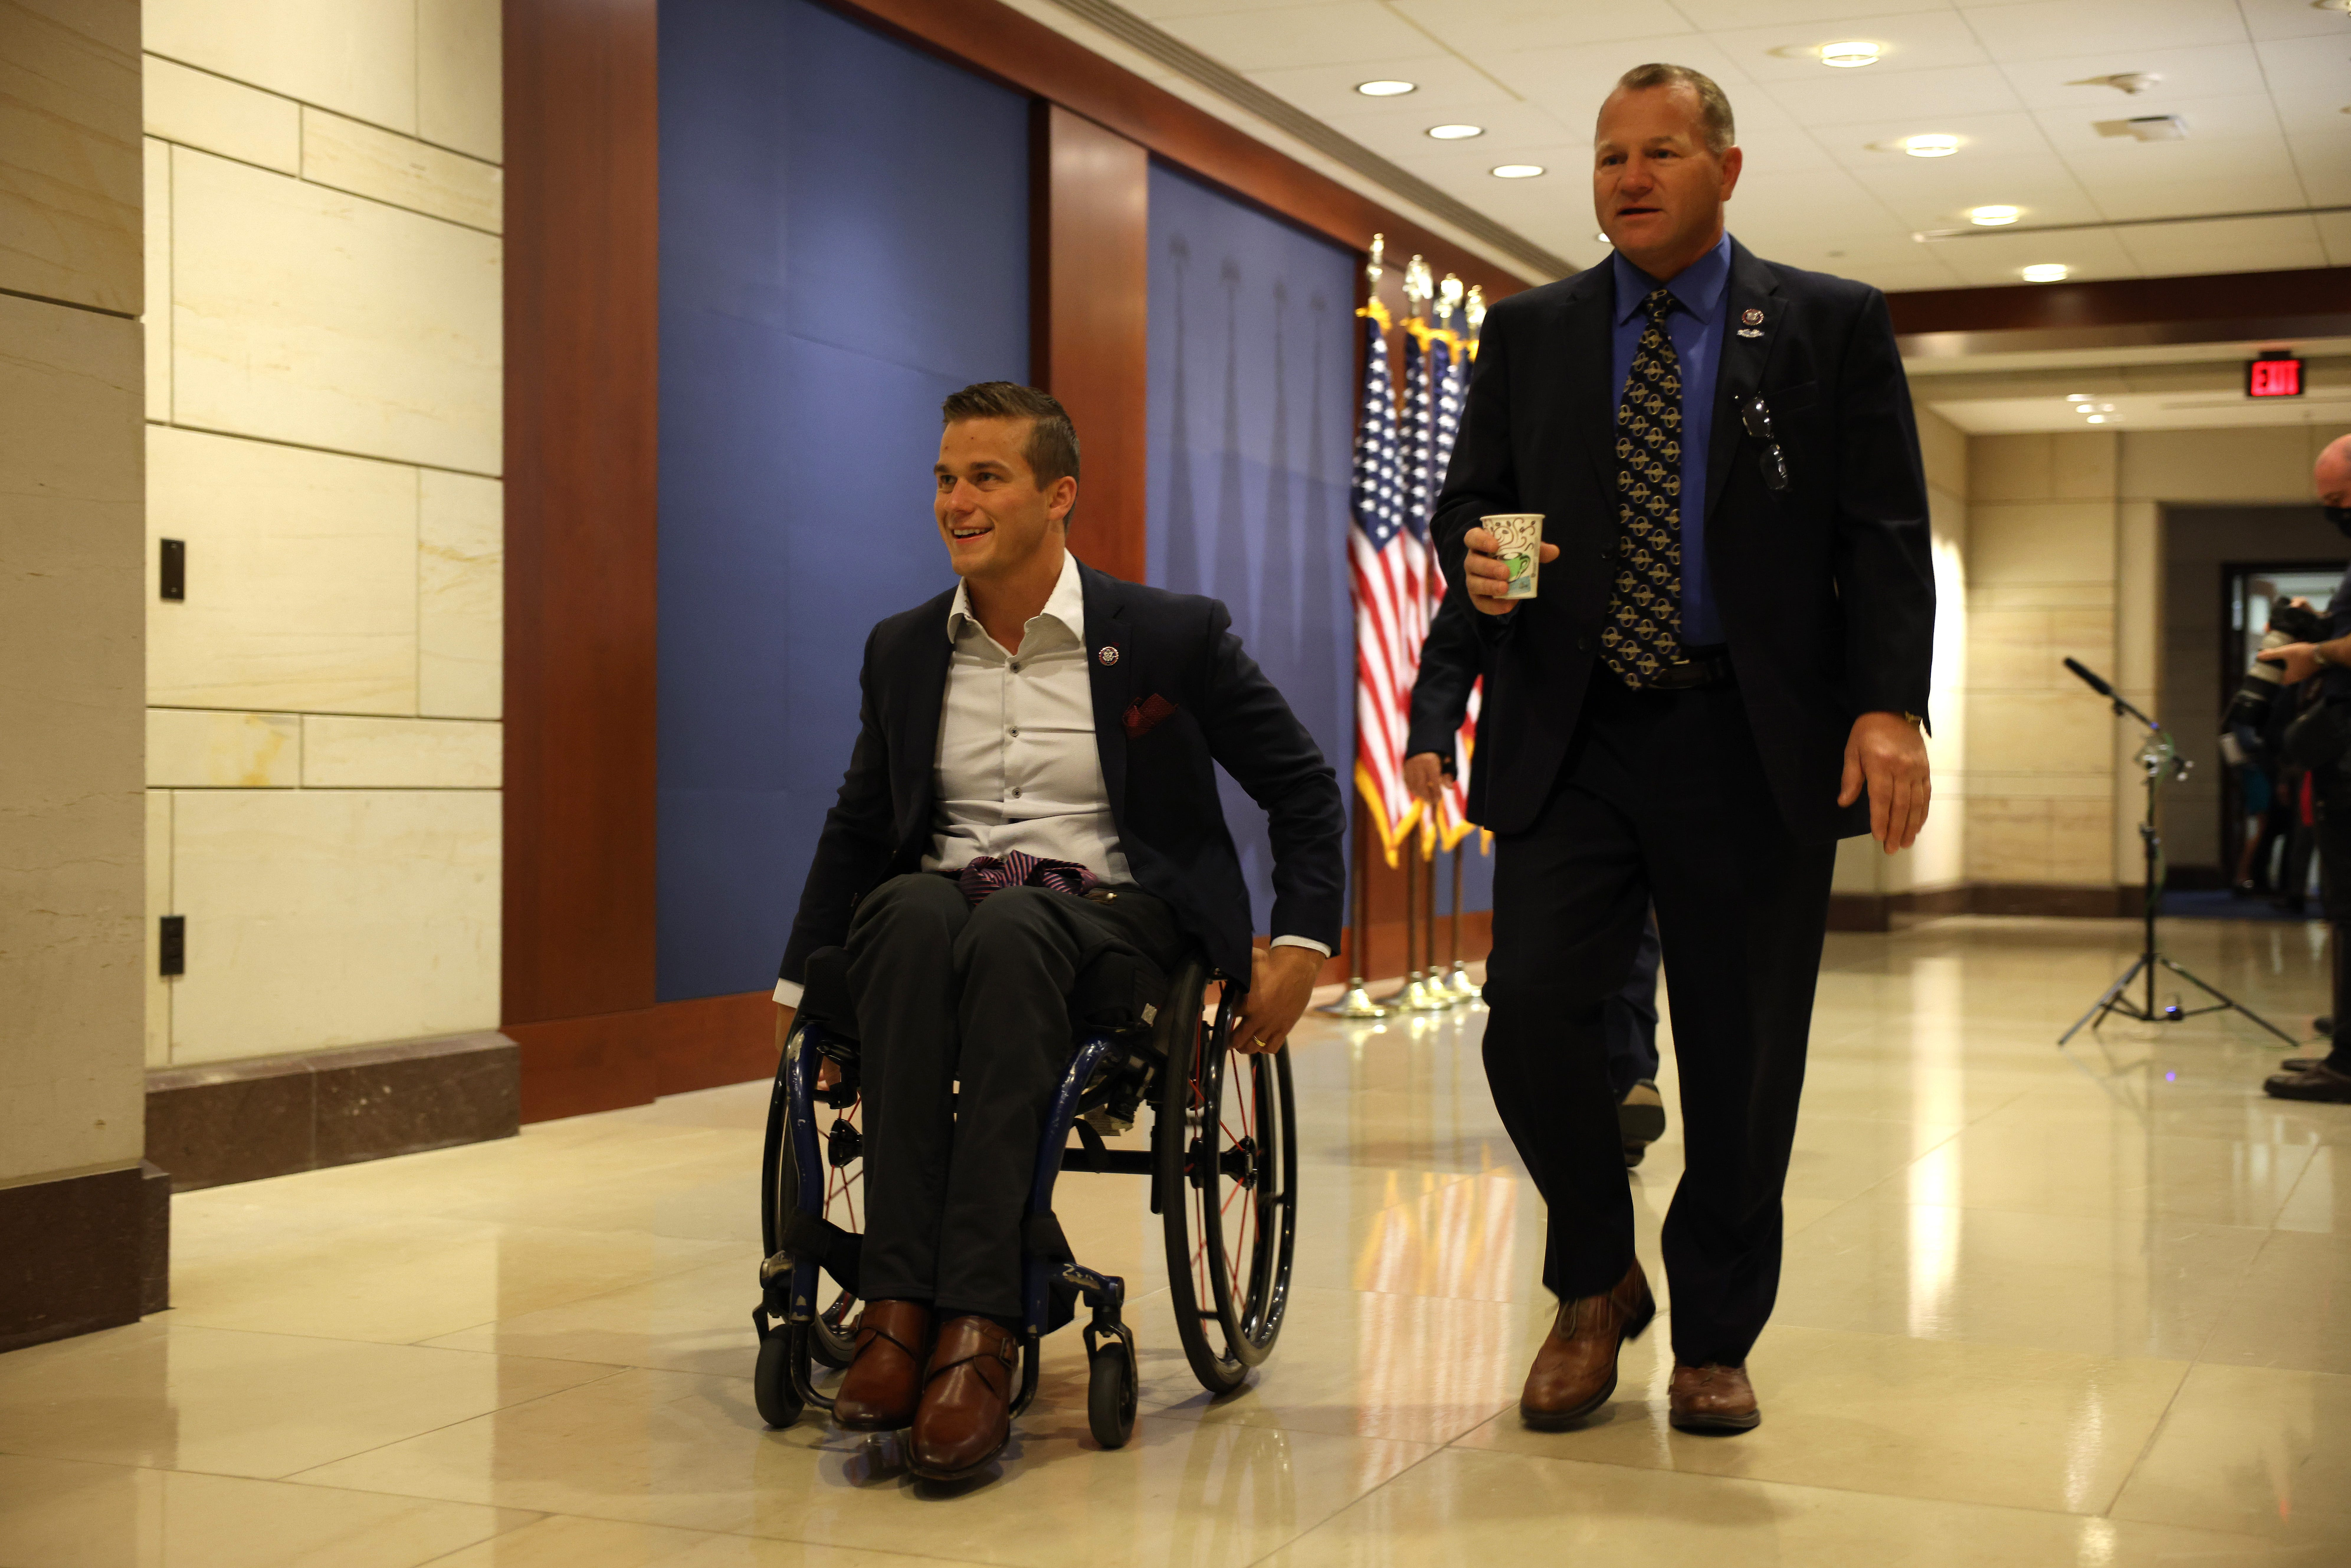 Rep. Madison Cawthorn, R-N.C., left, and Rep. Troy Nehls, R-Texas, arrive May 14, 2021, at a caucus meeting to pick a replacement for Rep. Liz Cheney, R-Wyo., as chair of the House Republican Conference in the U.S. Capitol Visitors Center in Washington, D.C.